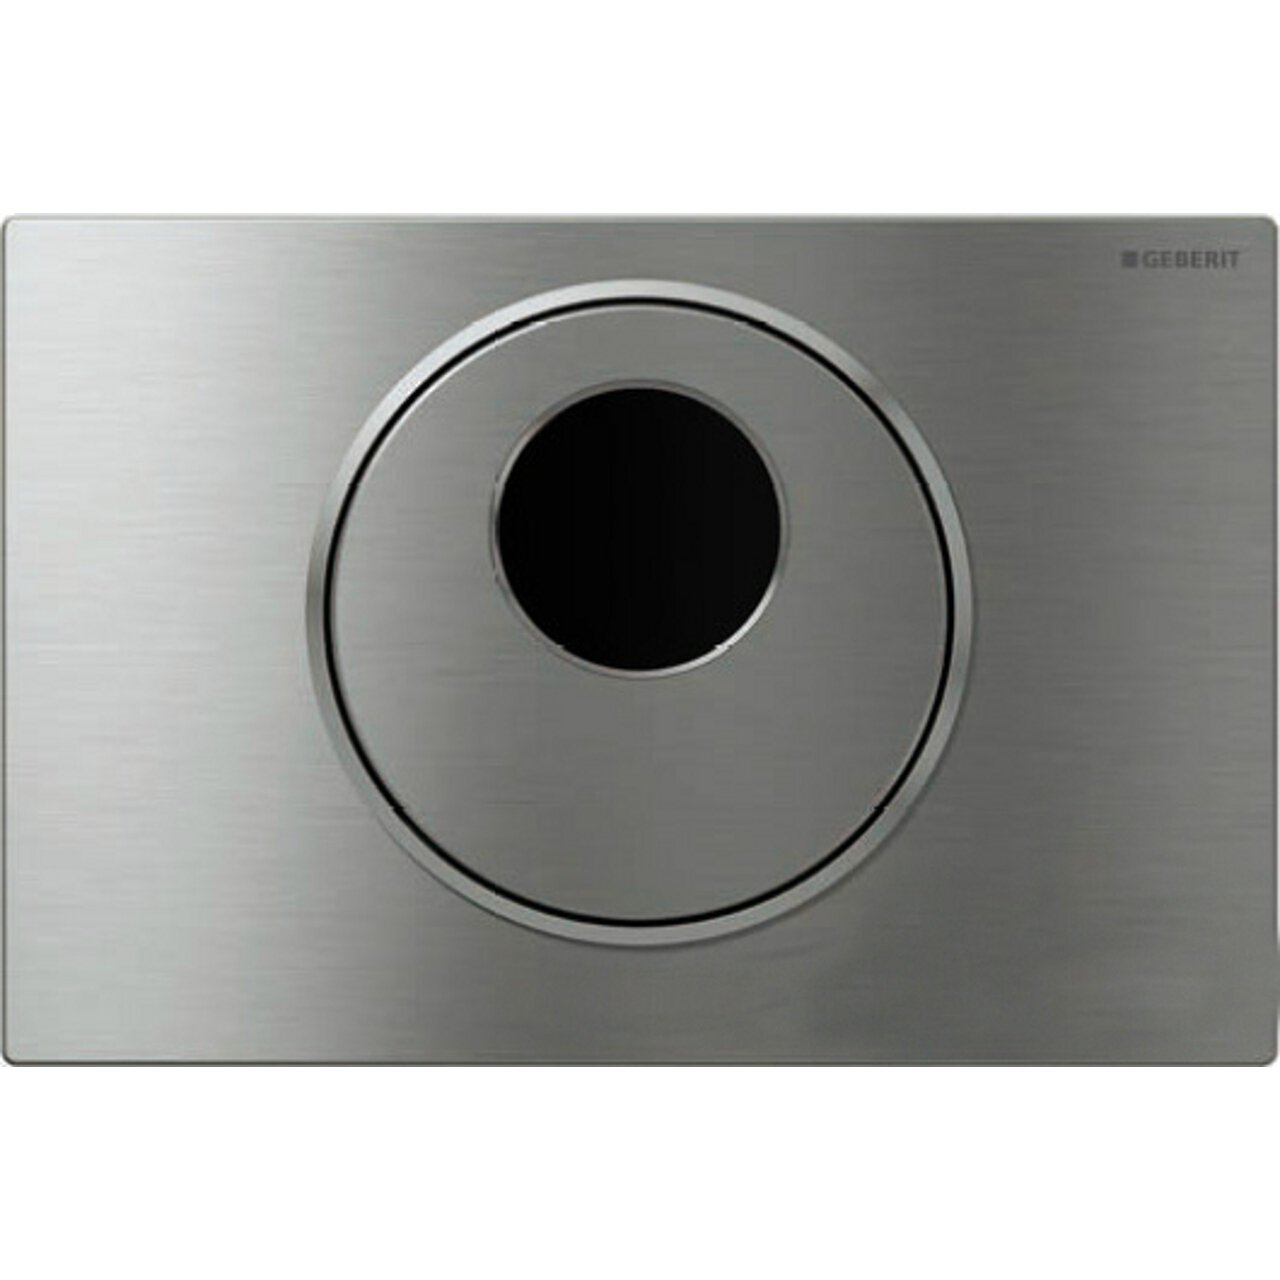 Geberit 115.891.SN.5 Sigma10 DC Hands Free Flush Plate, Stainless Steel